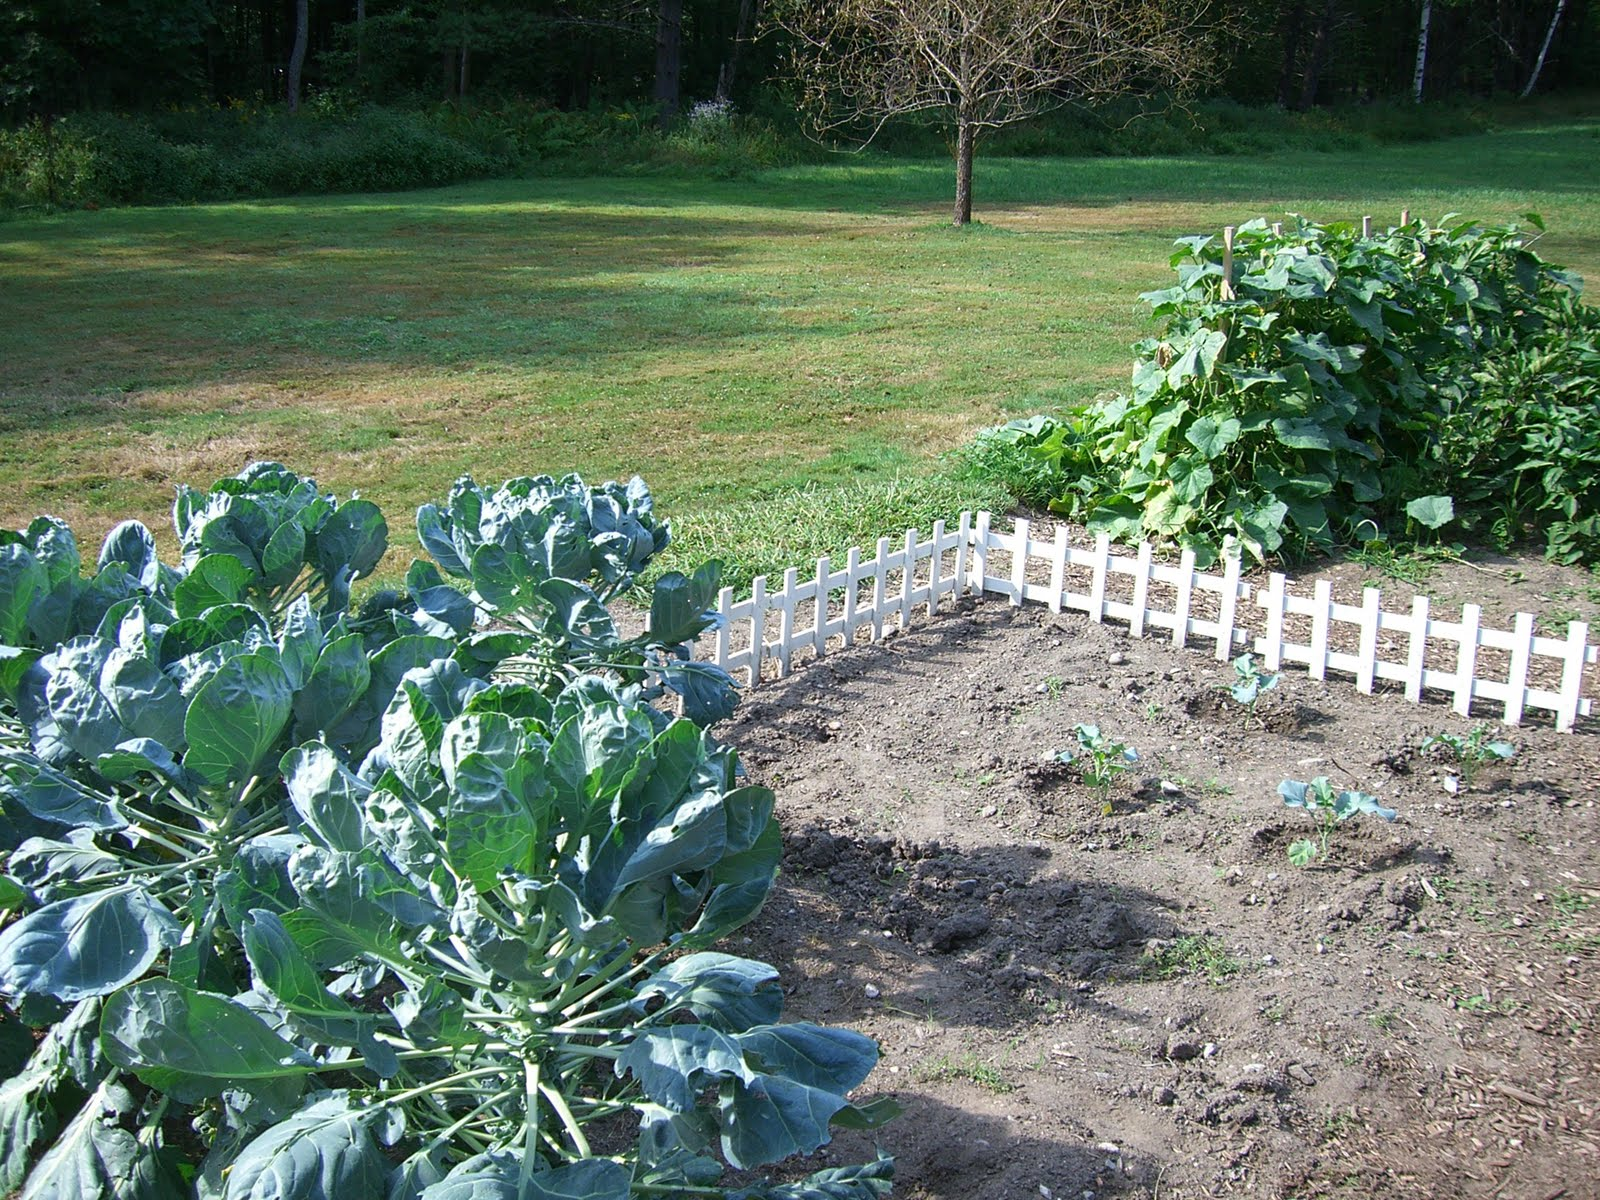 ... You Can See The Four New Broc Plants, And The Brussels Sprouts In The  Foreground. The Newly Planted Peas Are On The Outside Of The Little White  Fence, ...